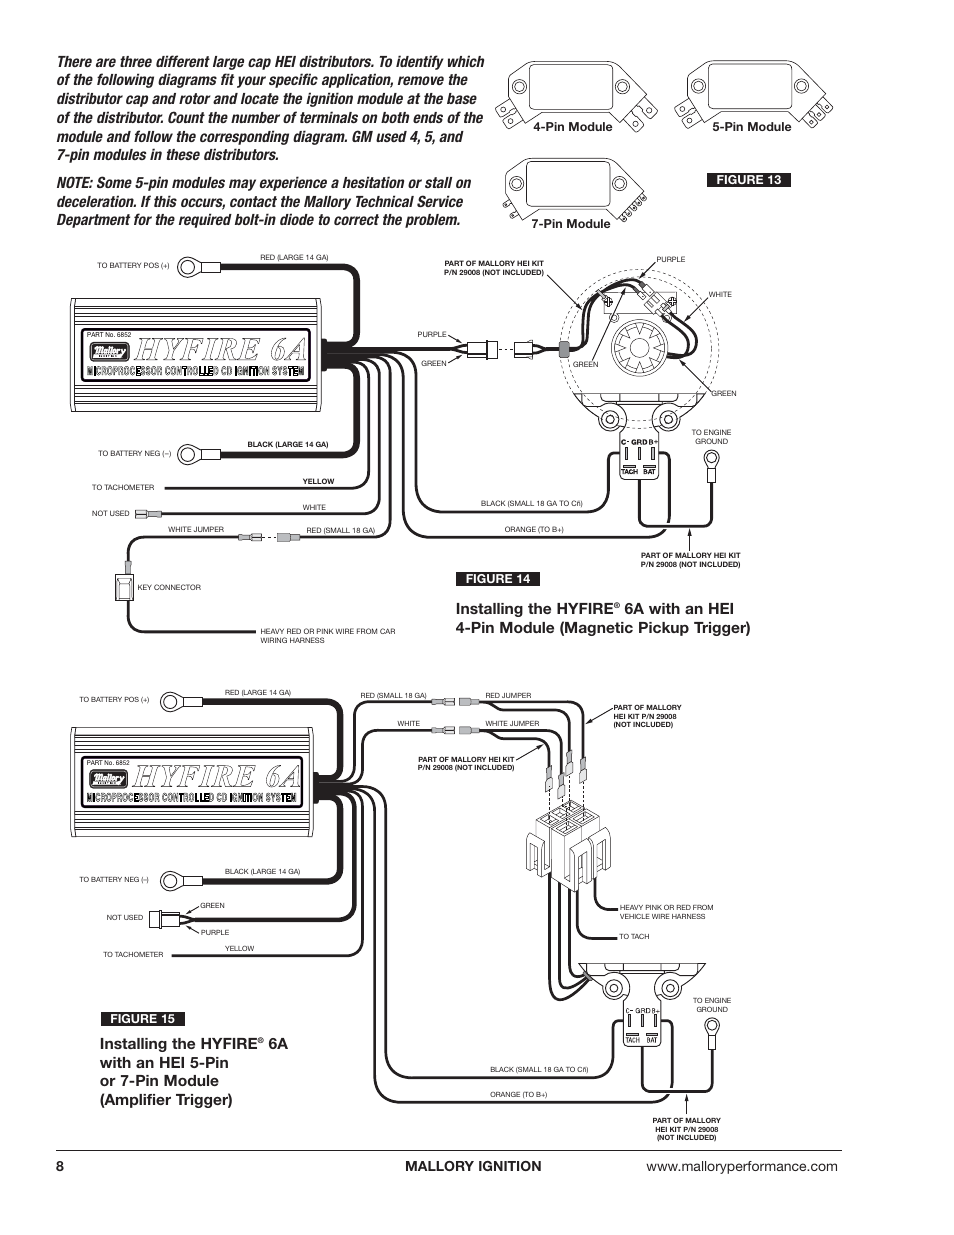 Best mallory ignition wiring diagram pictures images for image on mallory 685 ignition wiring diagram Mallory HyFire 6AL Wiring CDI Ignition Wiring Diagram